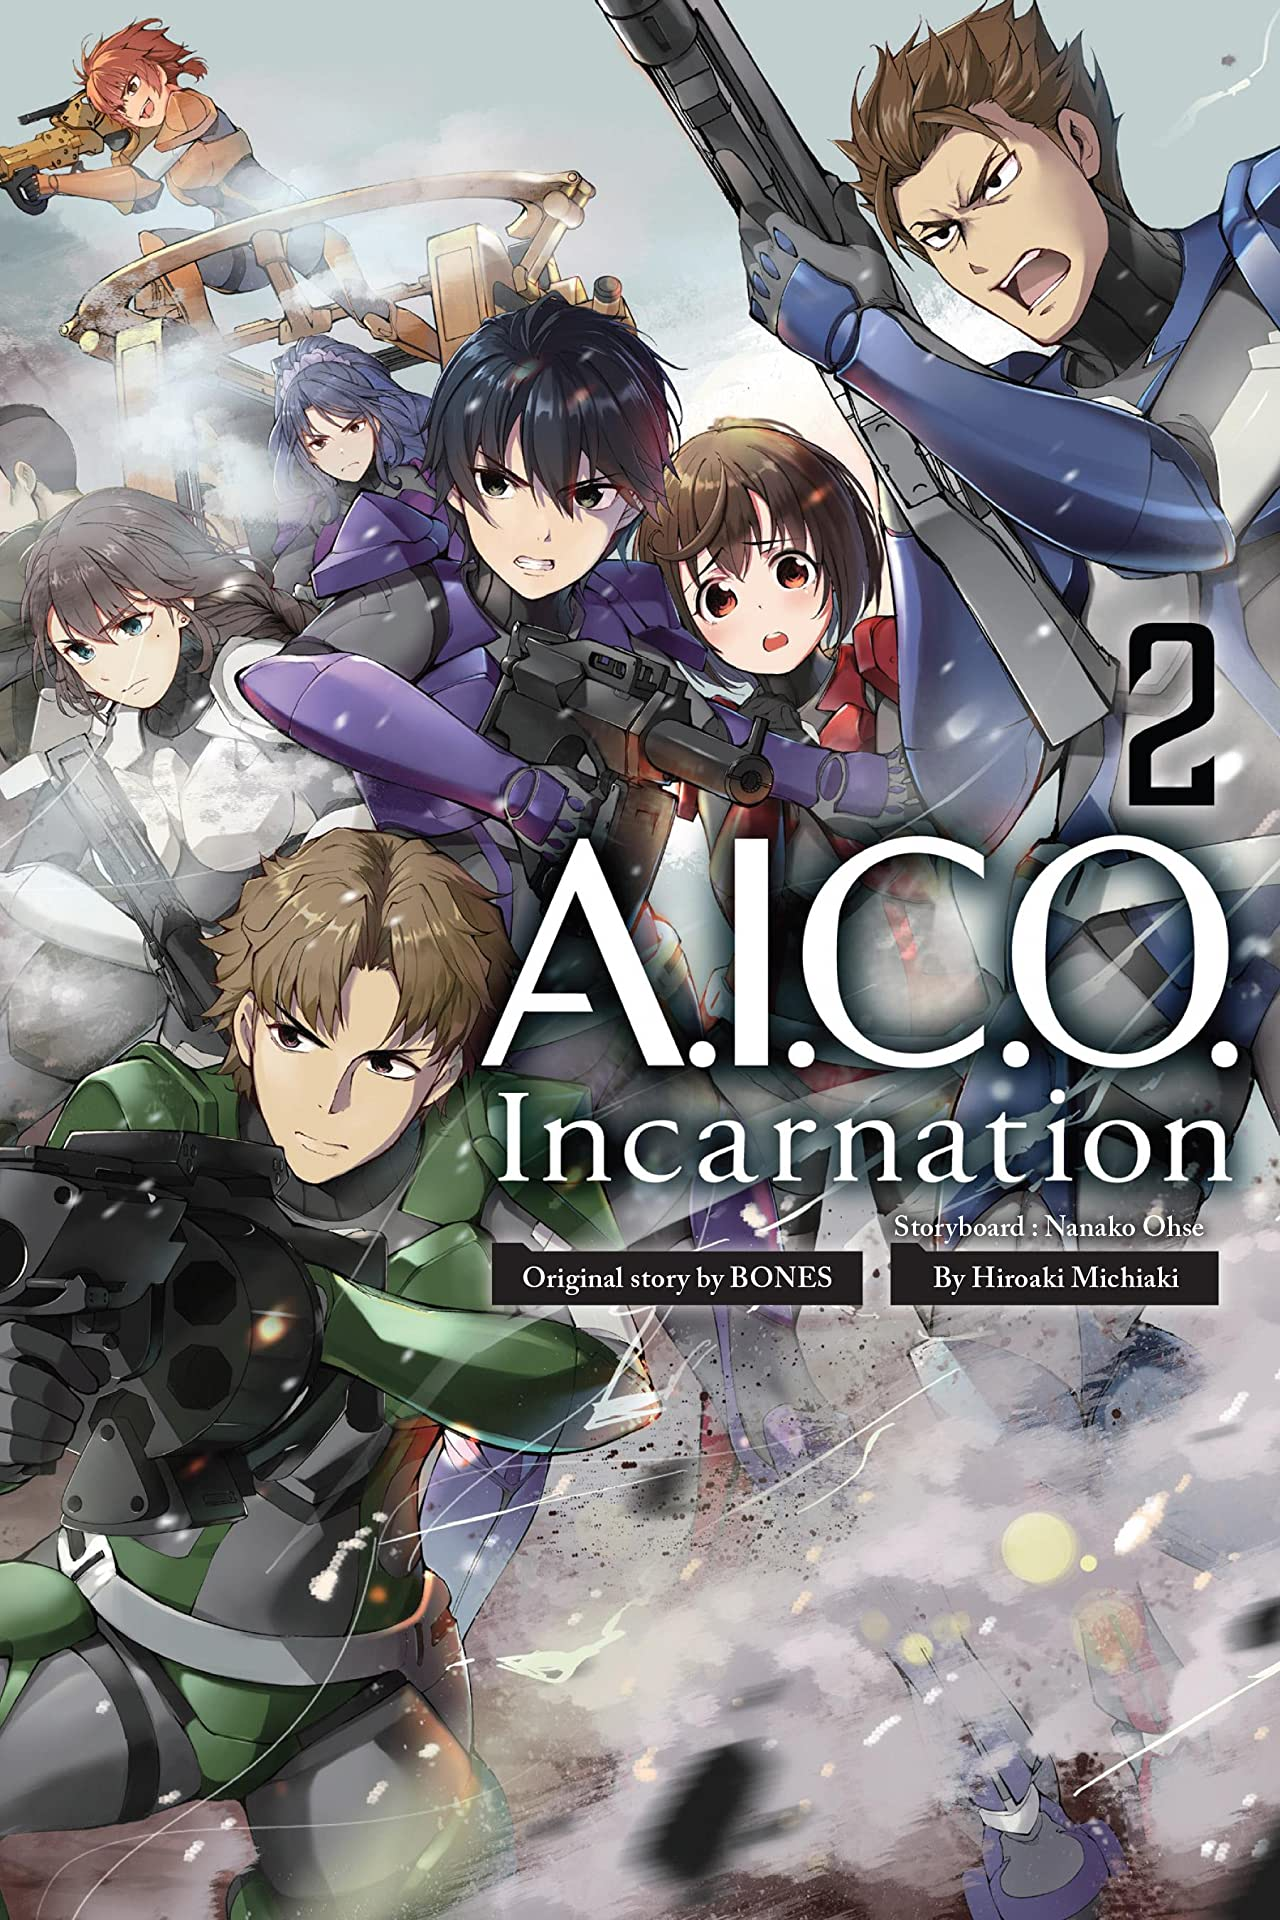 A.I.C.O. Incarnation Vol. 2